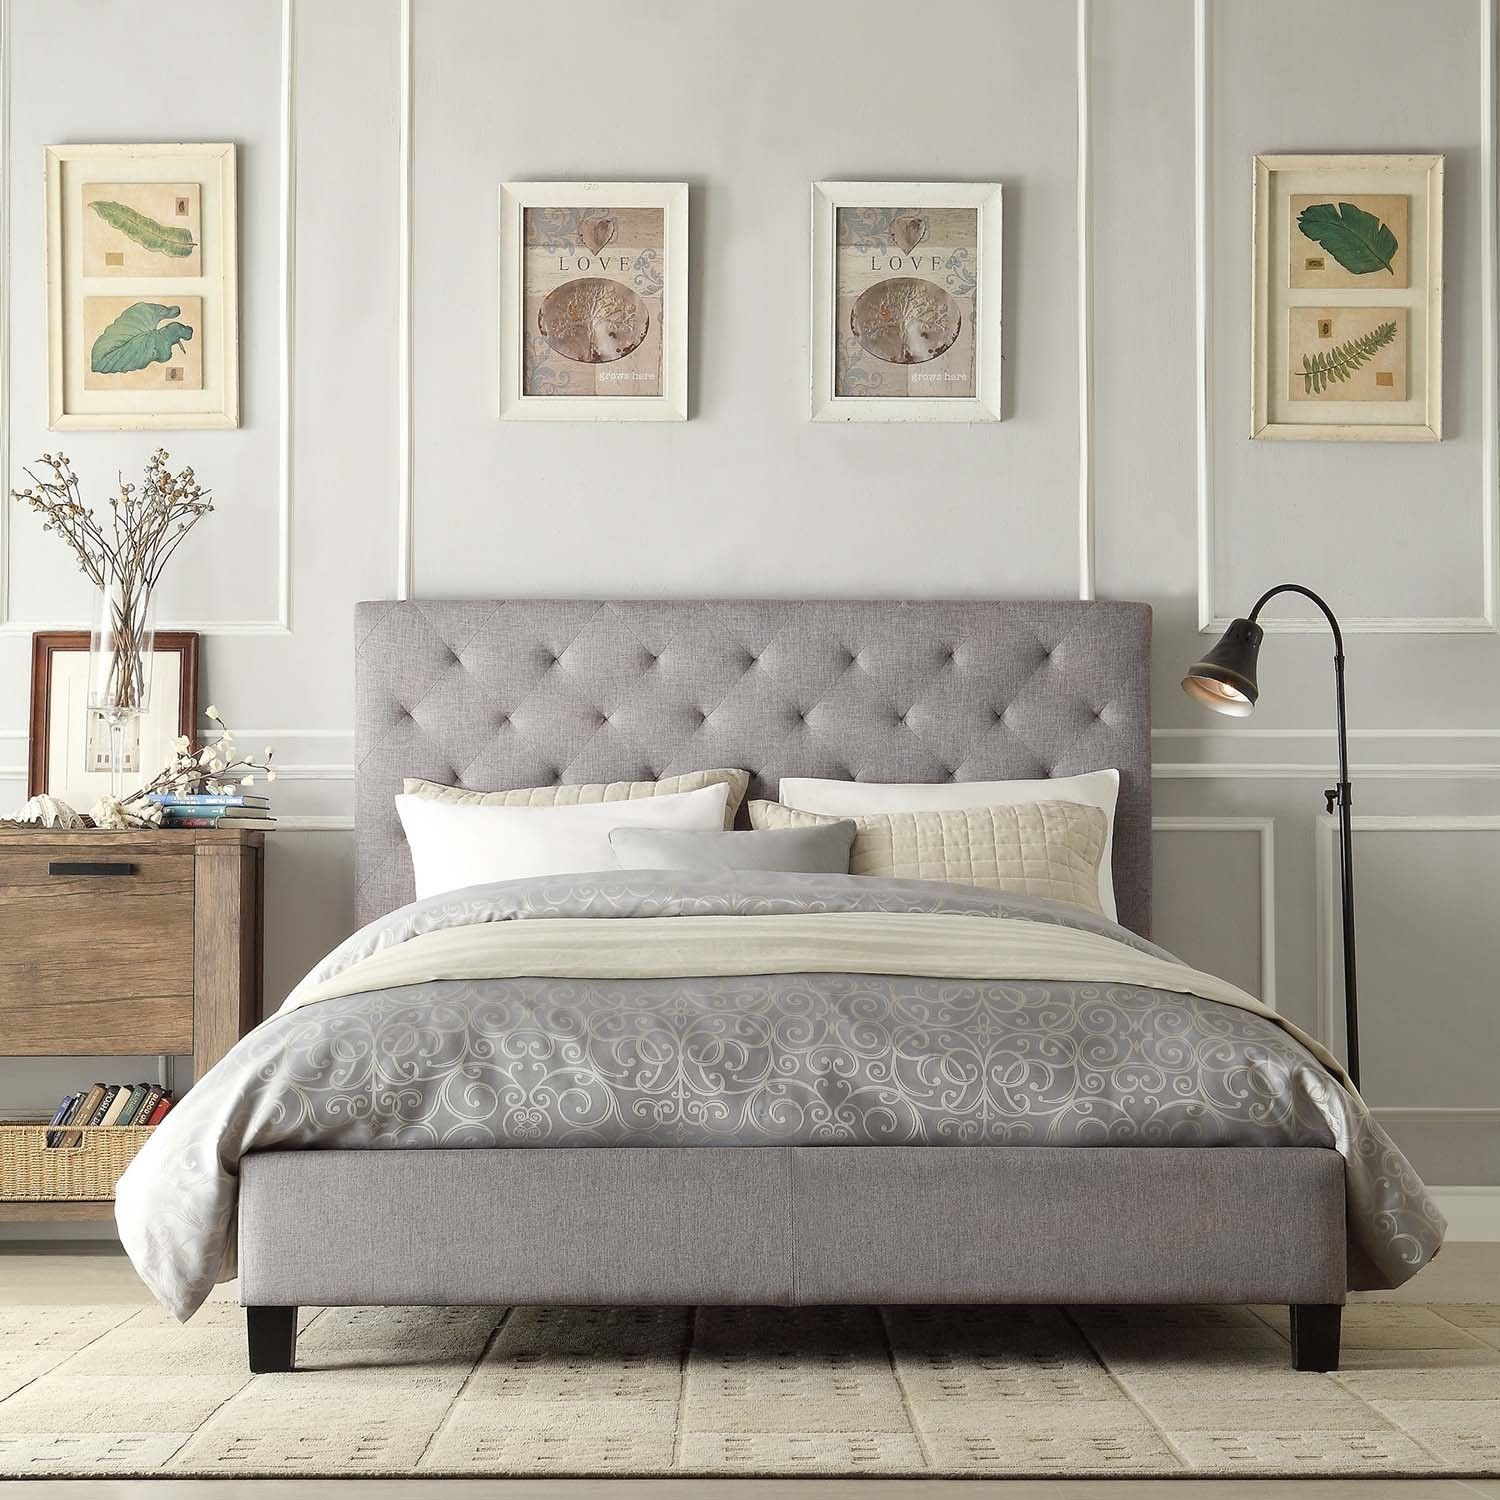 This Elegant Platform Bed Features A Button Tufted Headboard And Durable  Linen Upholstery. This Queen Sized Bed Has Small Black Wooden Legs To Raise  It Off ...